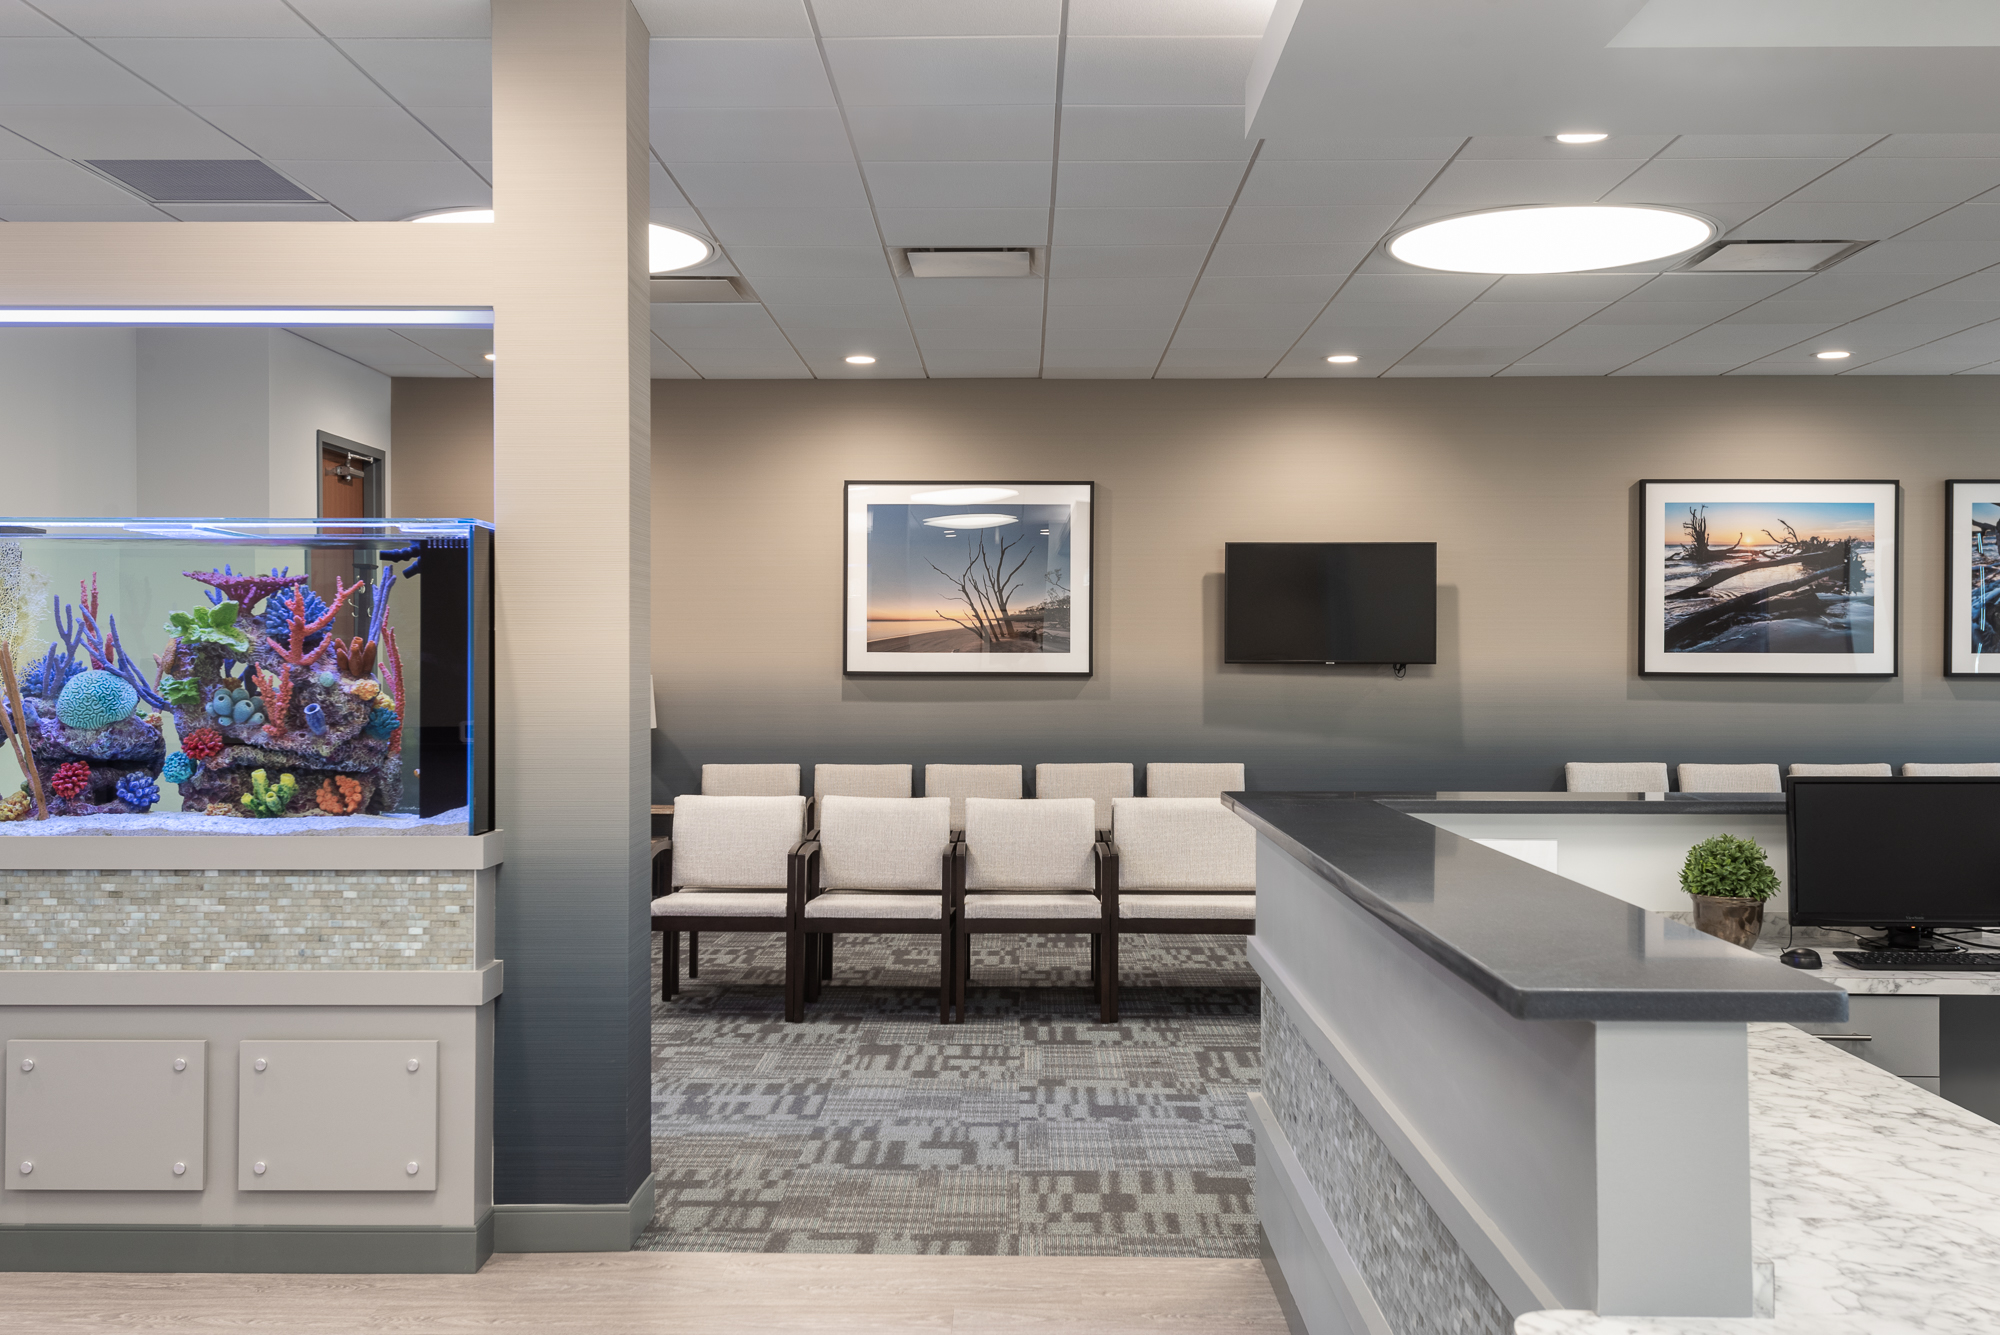 Micamy Design Studio_Interior Design_Pediatric Eye Consultants_North Florida_Riverside_Ophthalmology_Strabismus_Commercial_Office_Medical_Eye Care_Renovation_Patcraft_Cambria_Crossville.jpg